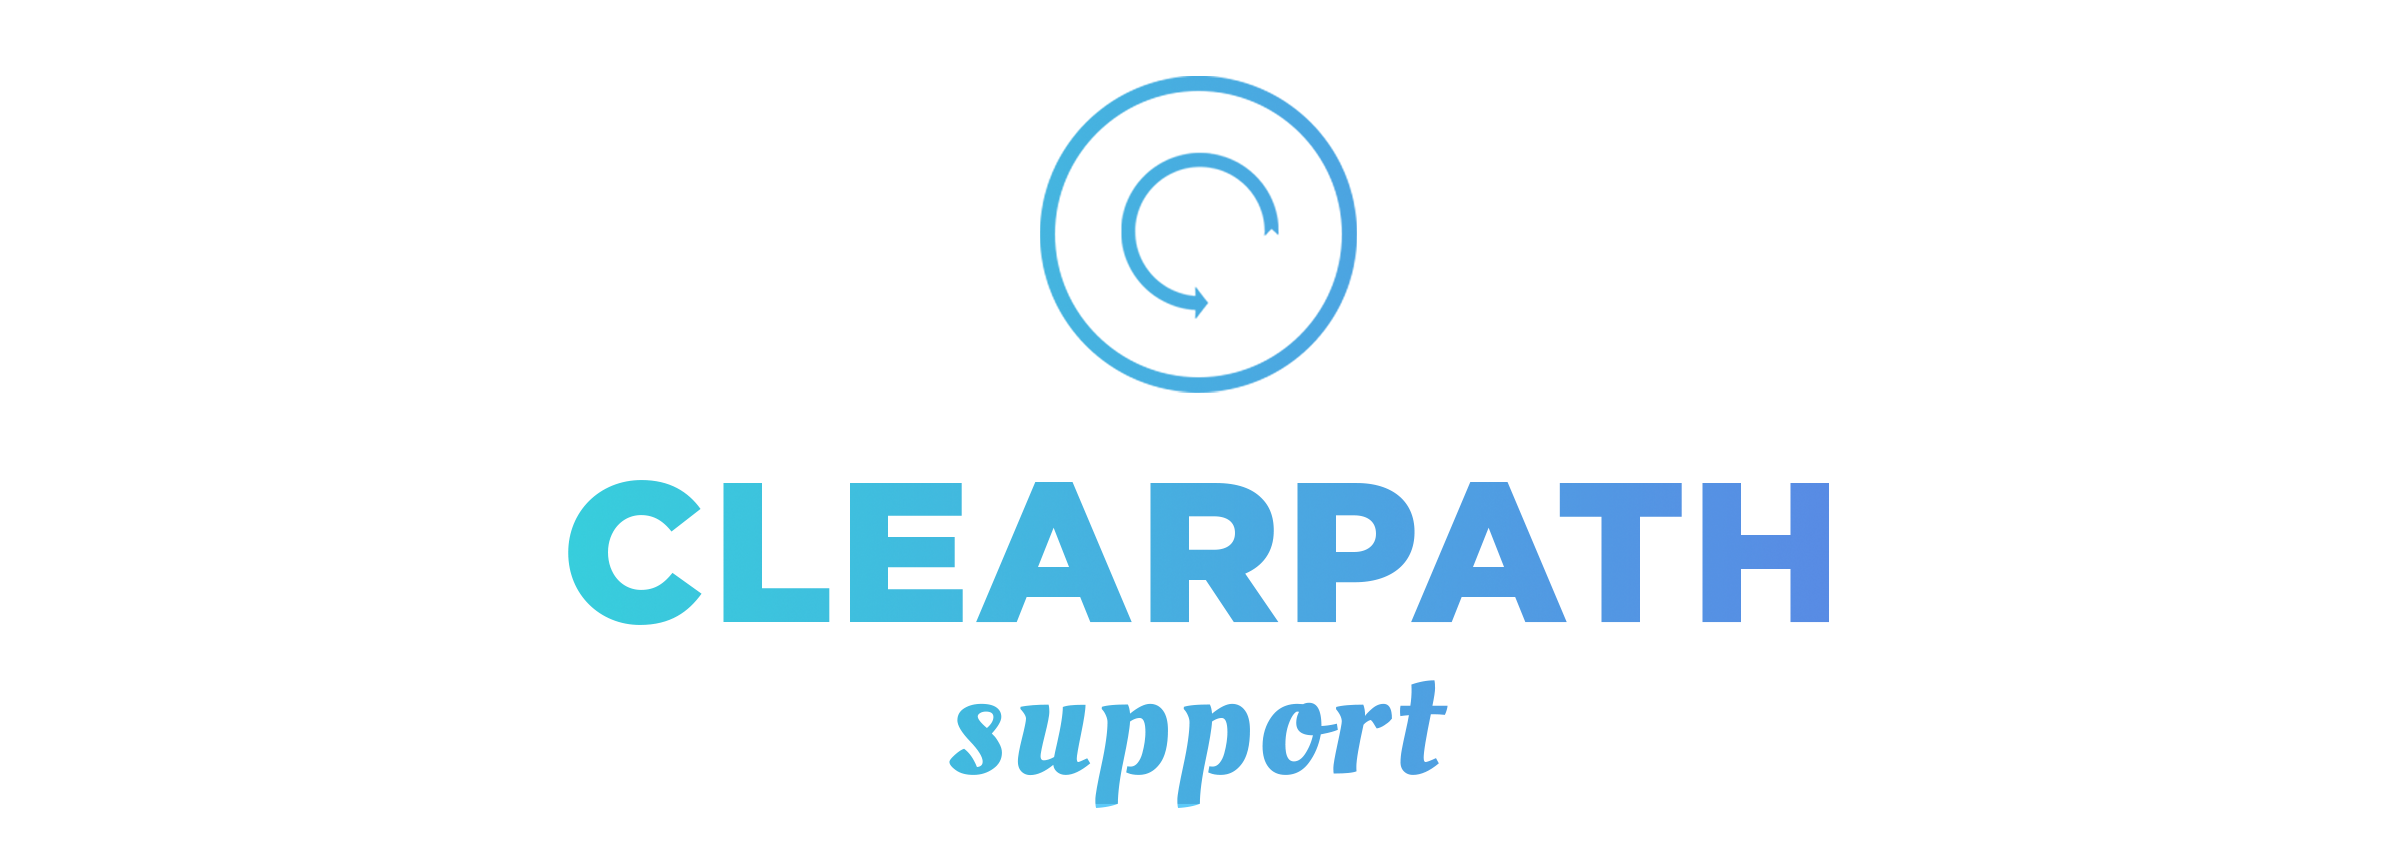 Clearpath Support Partnerships